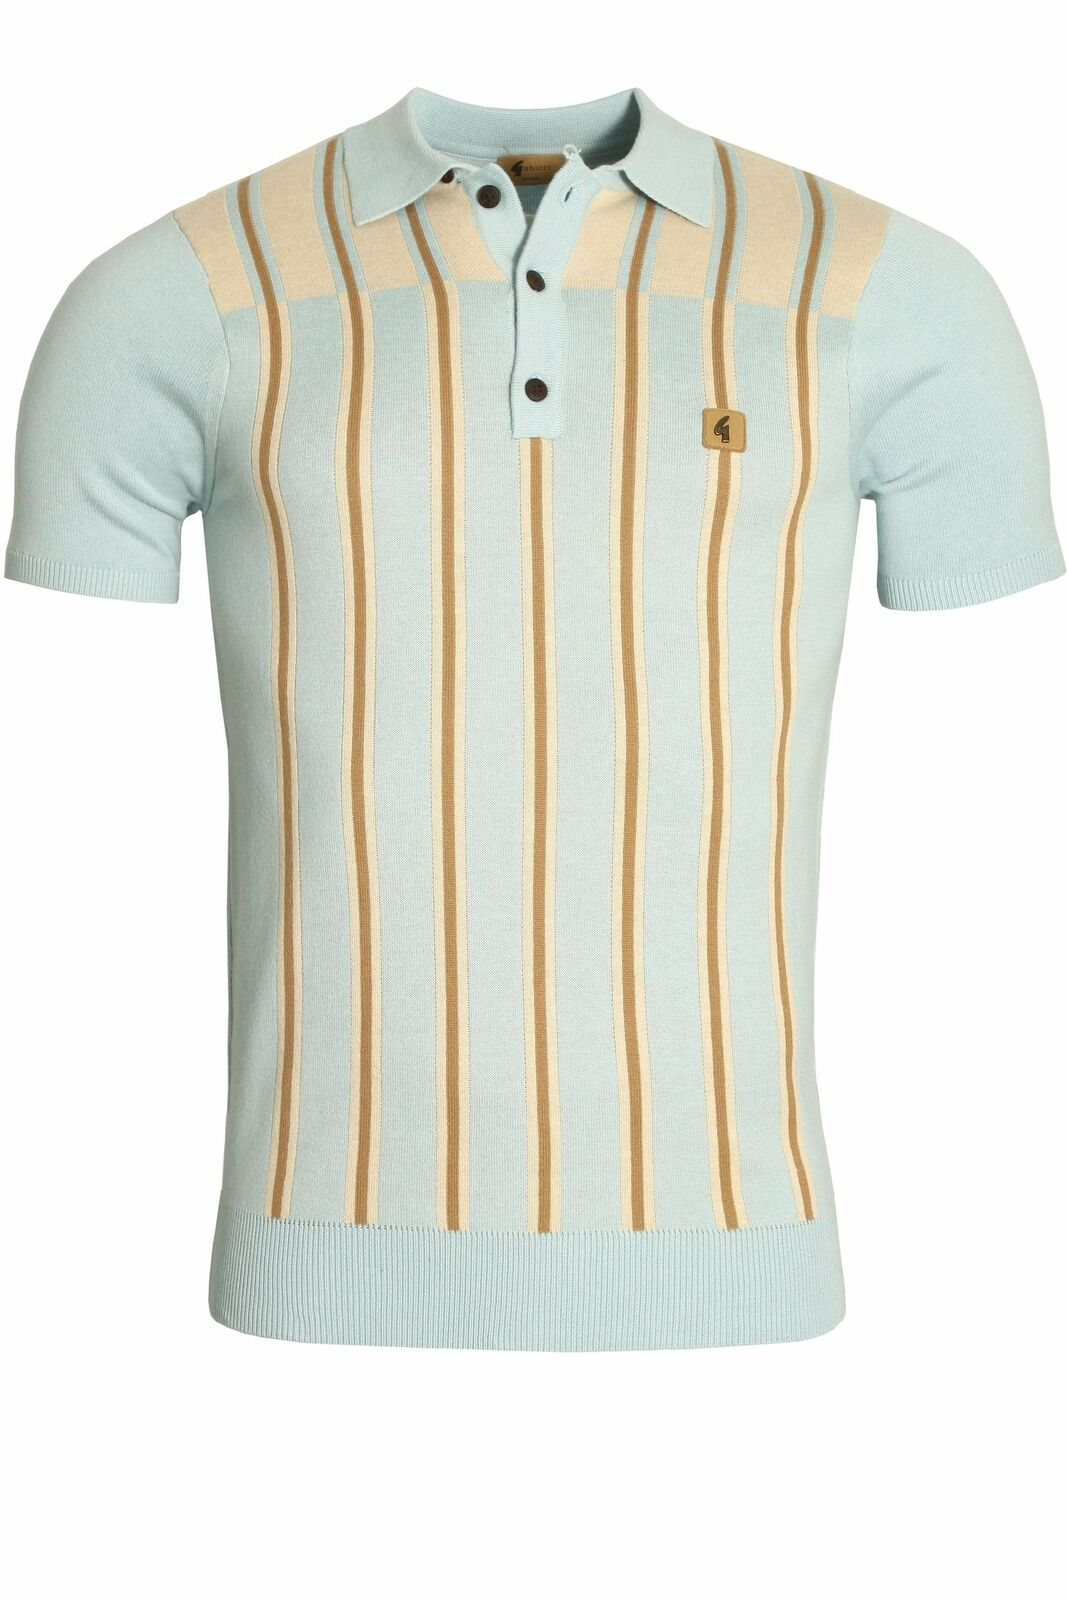 Mens Polo Shirt GABICCI Holmdene Boating Stripe Polo Shirt   Mist